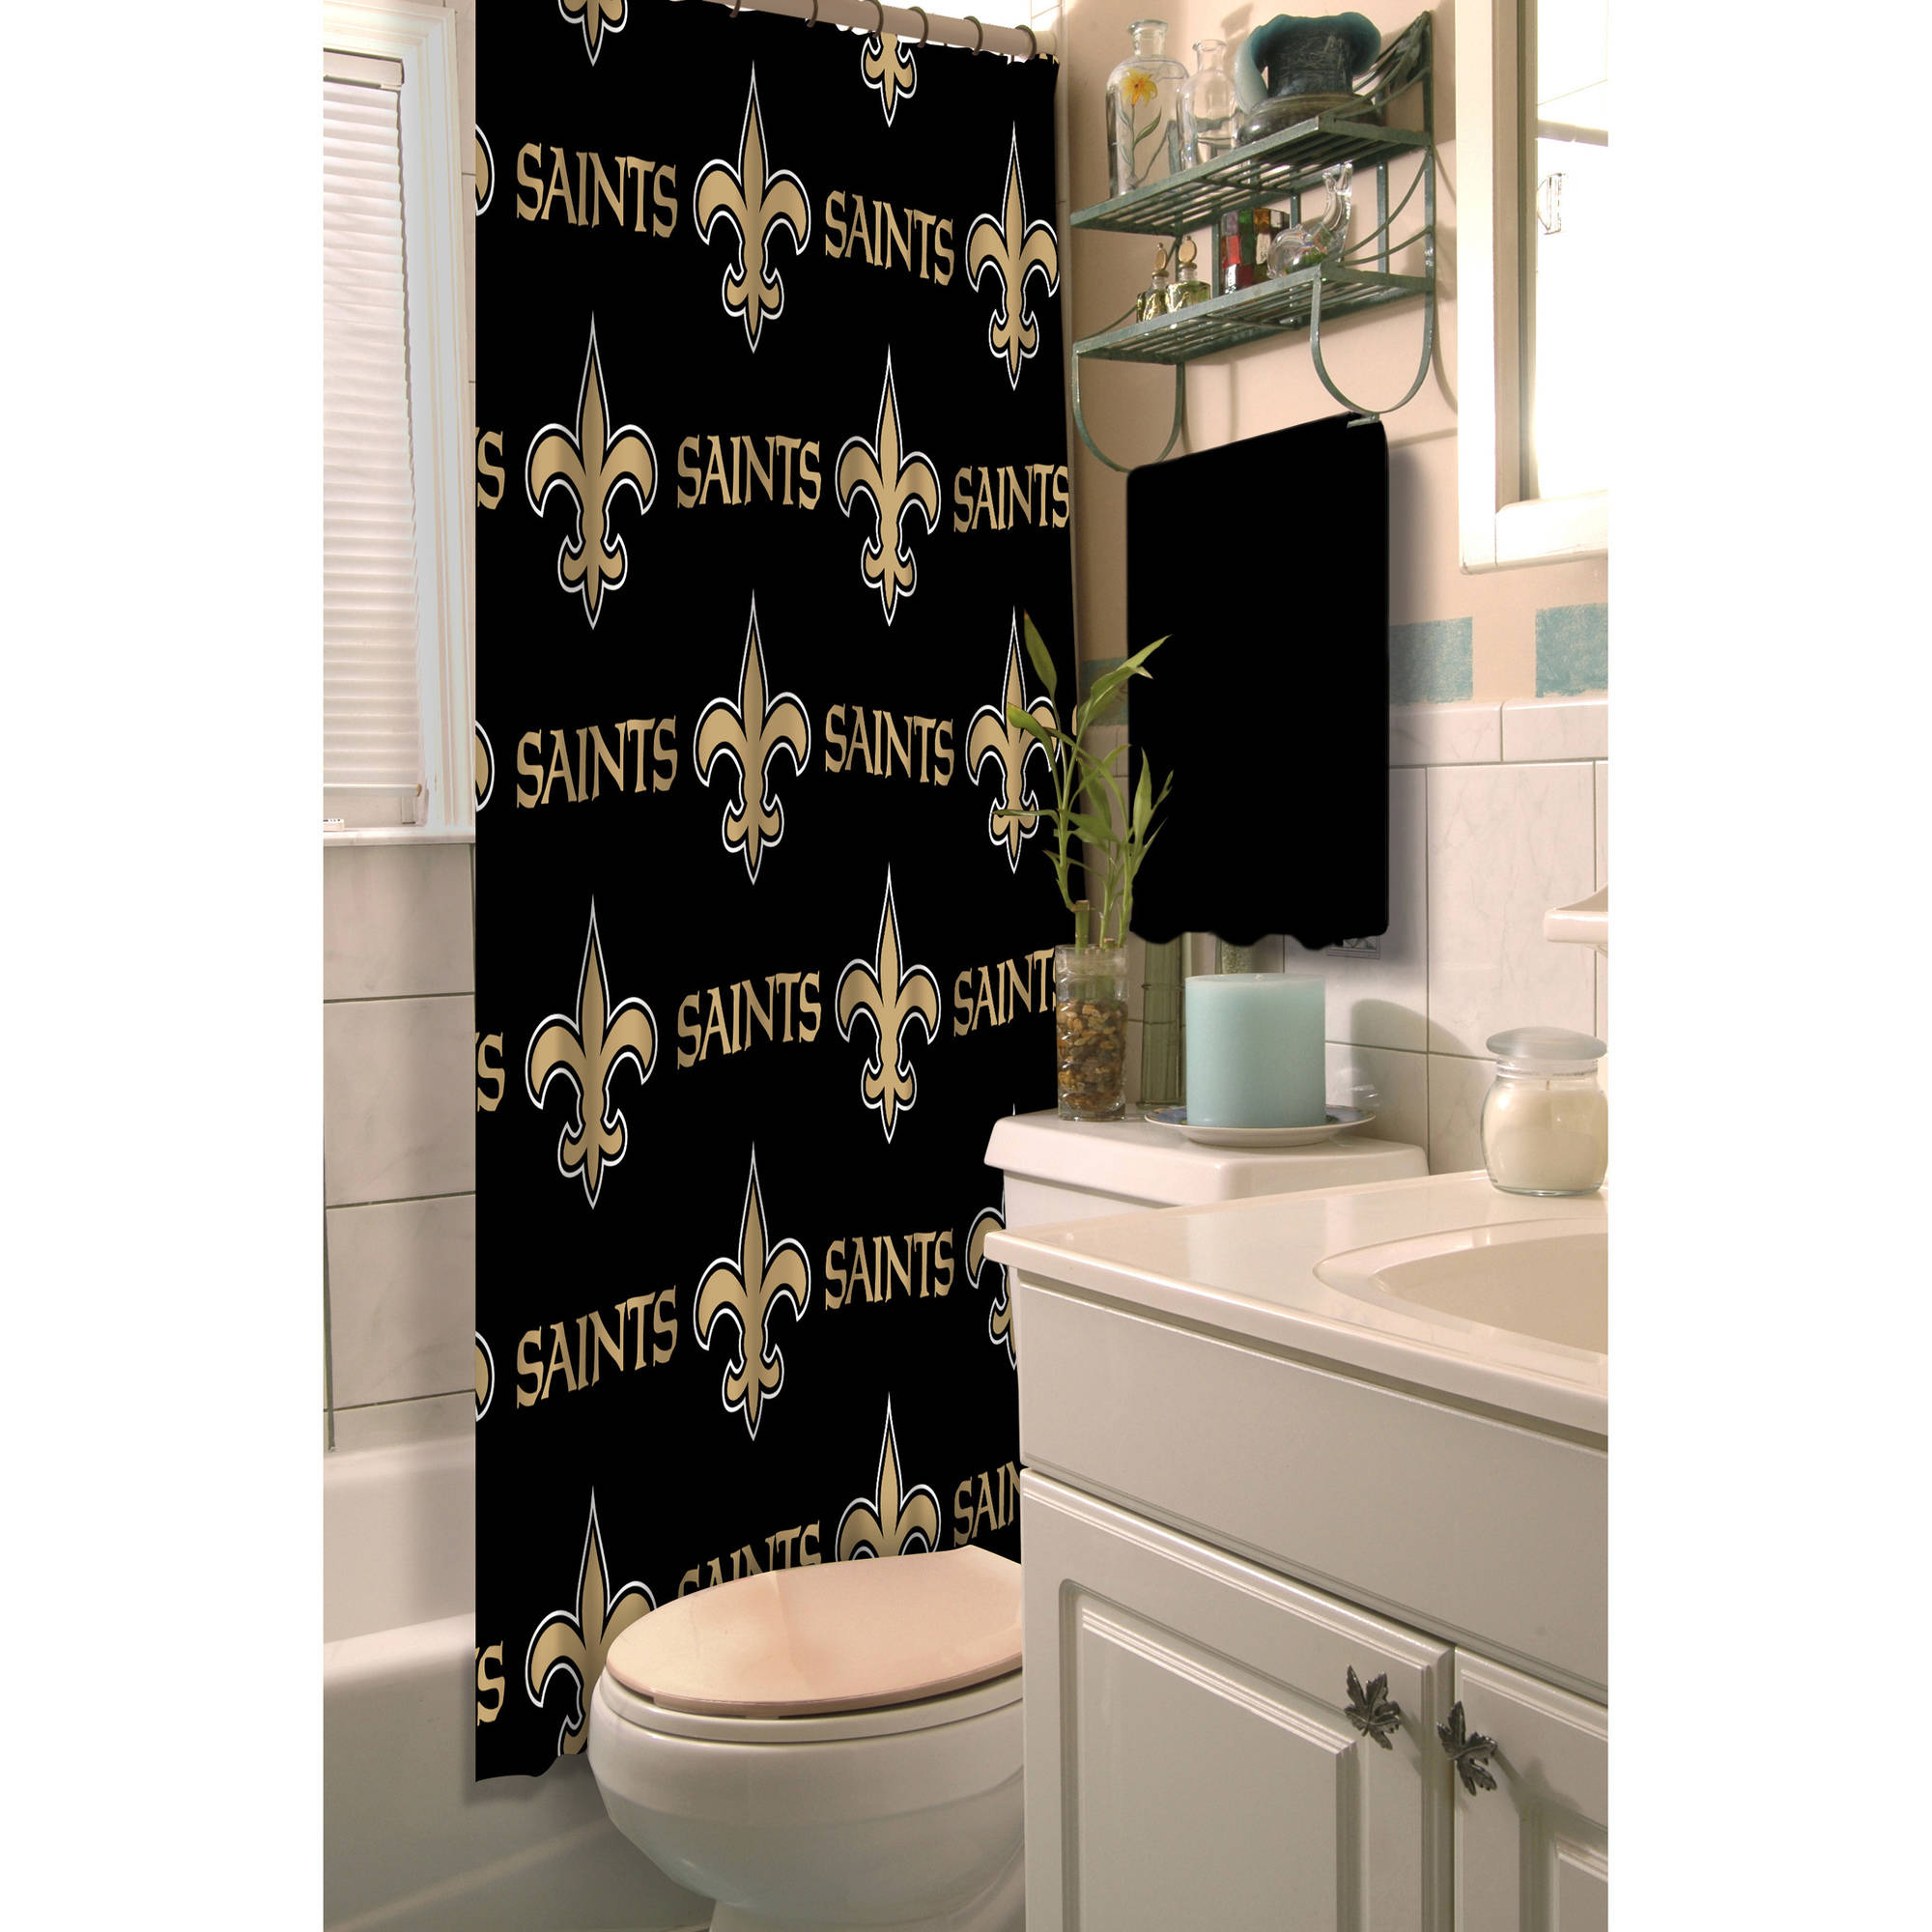 NFL Oakland Raiders Decorative Bath Collection   Shower Curtain   Walmart  com. NFL Oakland Raiders Decorative Bath Collection   Shower Curtain